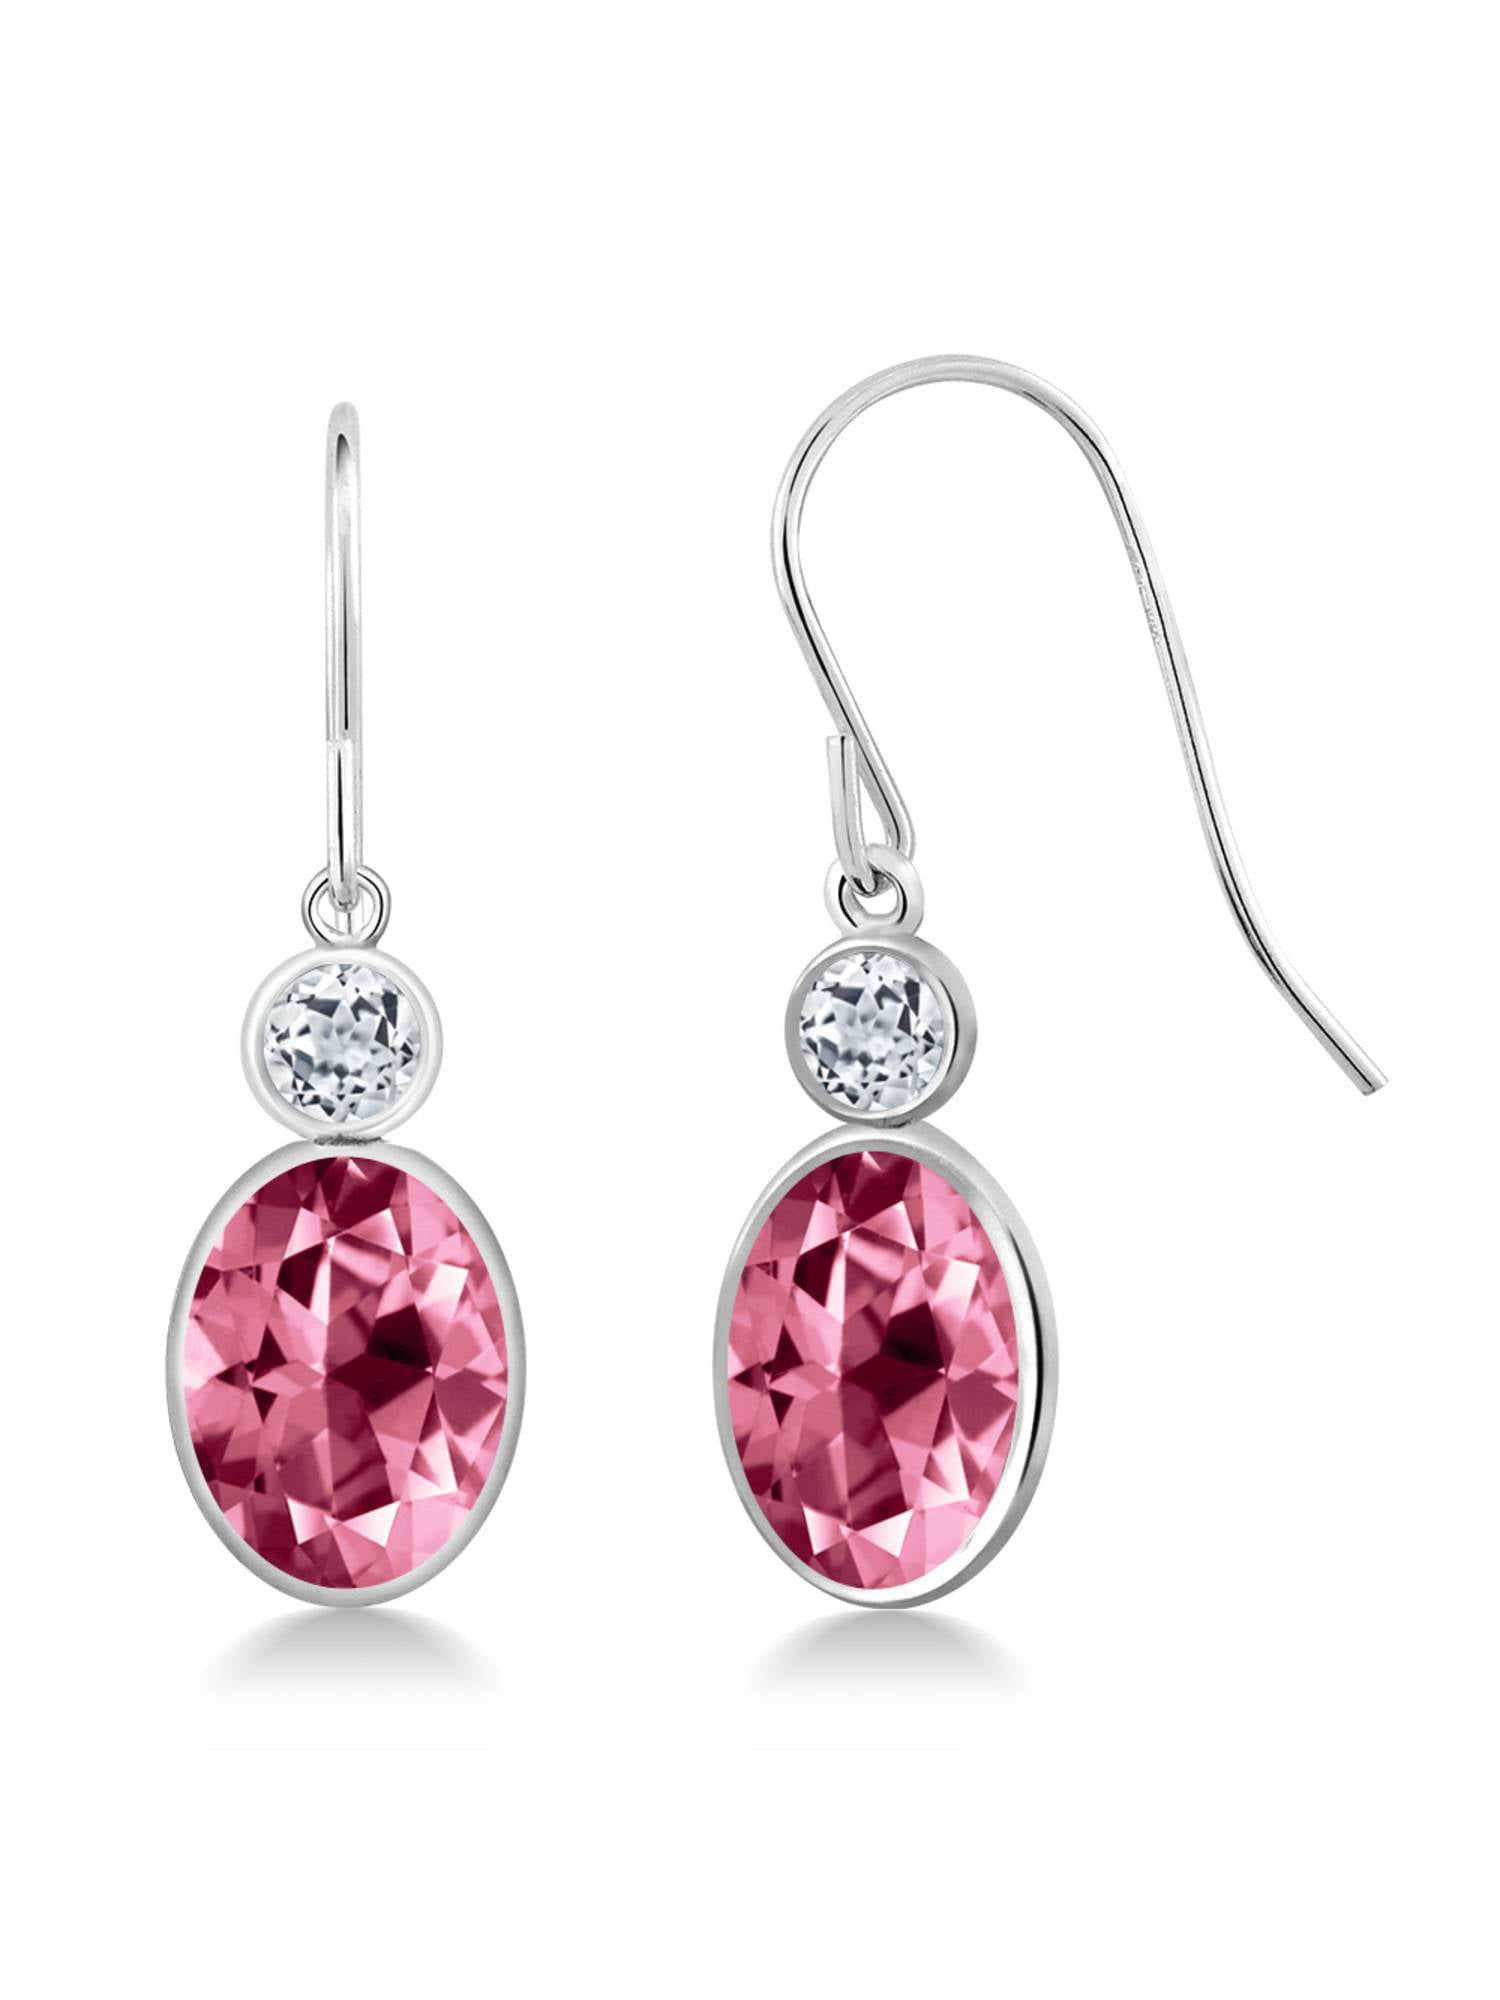 14K White Gold Earrings Topaz Set with Oval Pink Topaz from Swarovski by